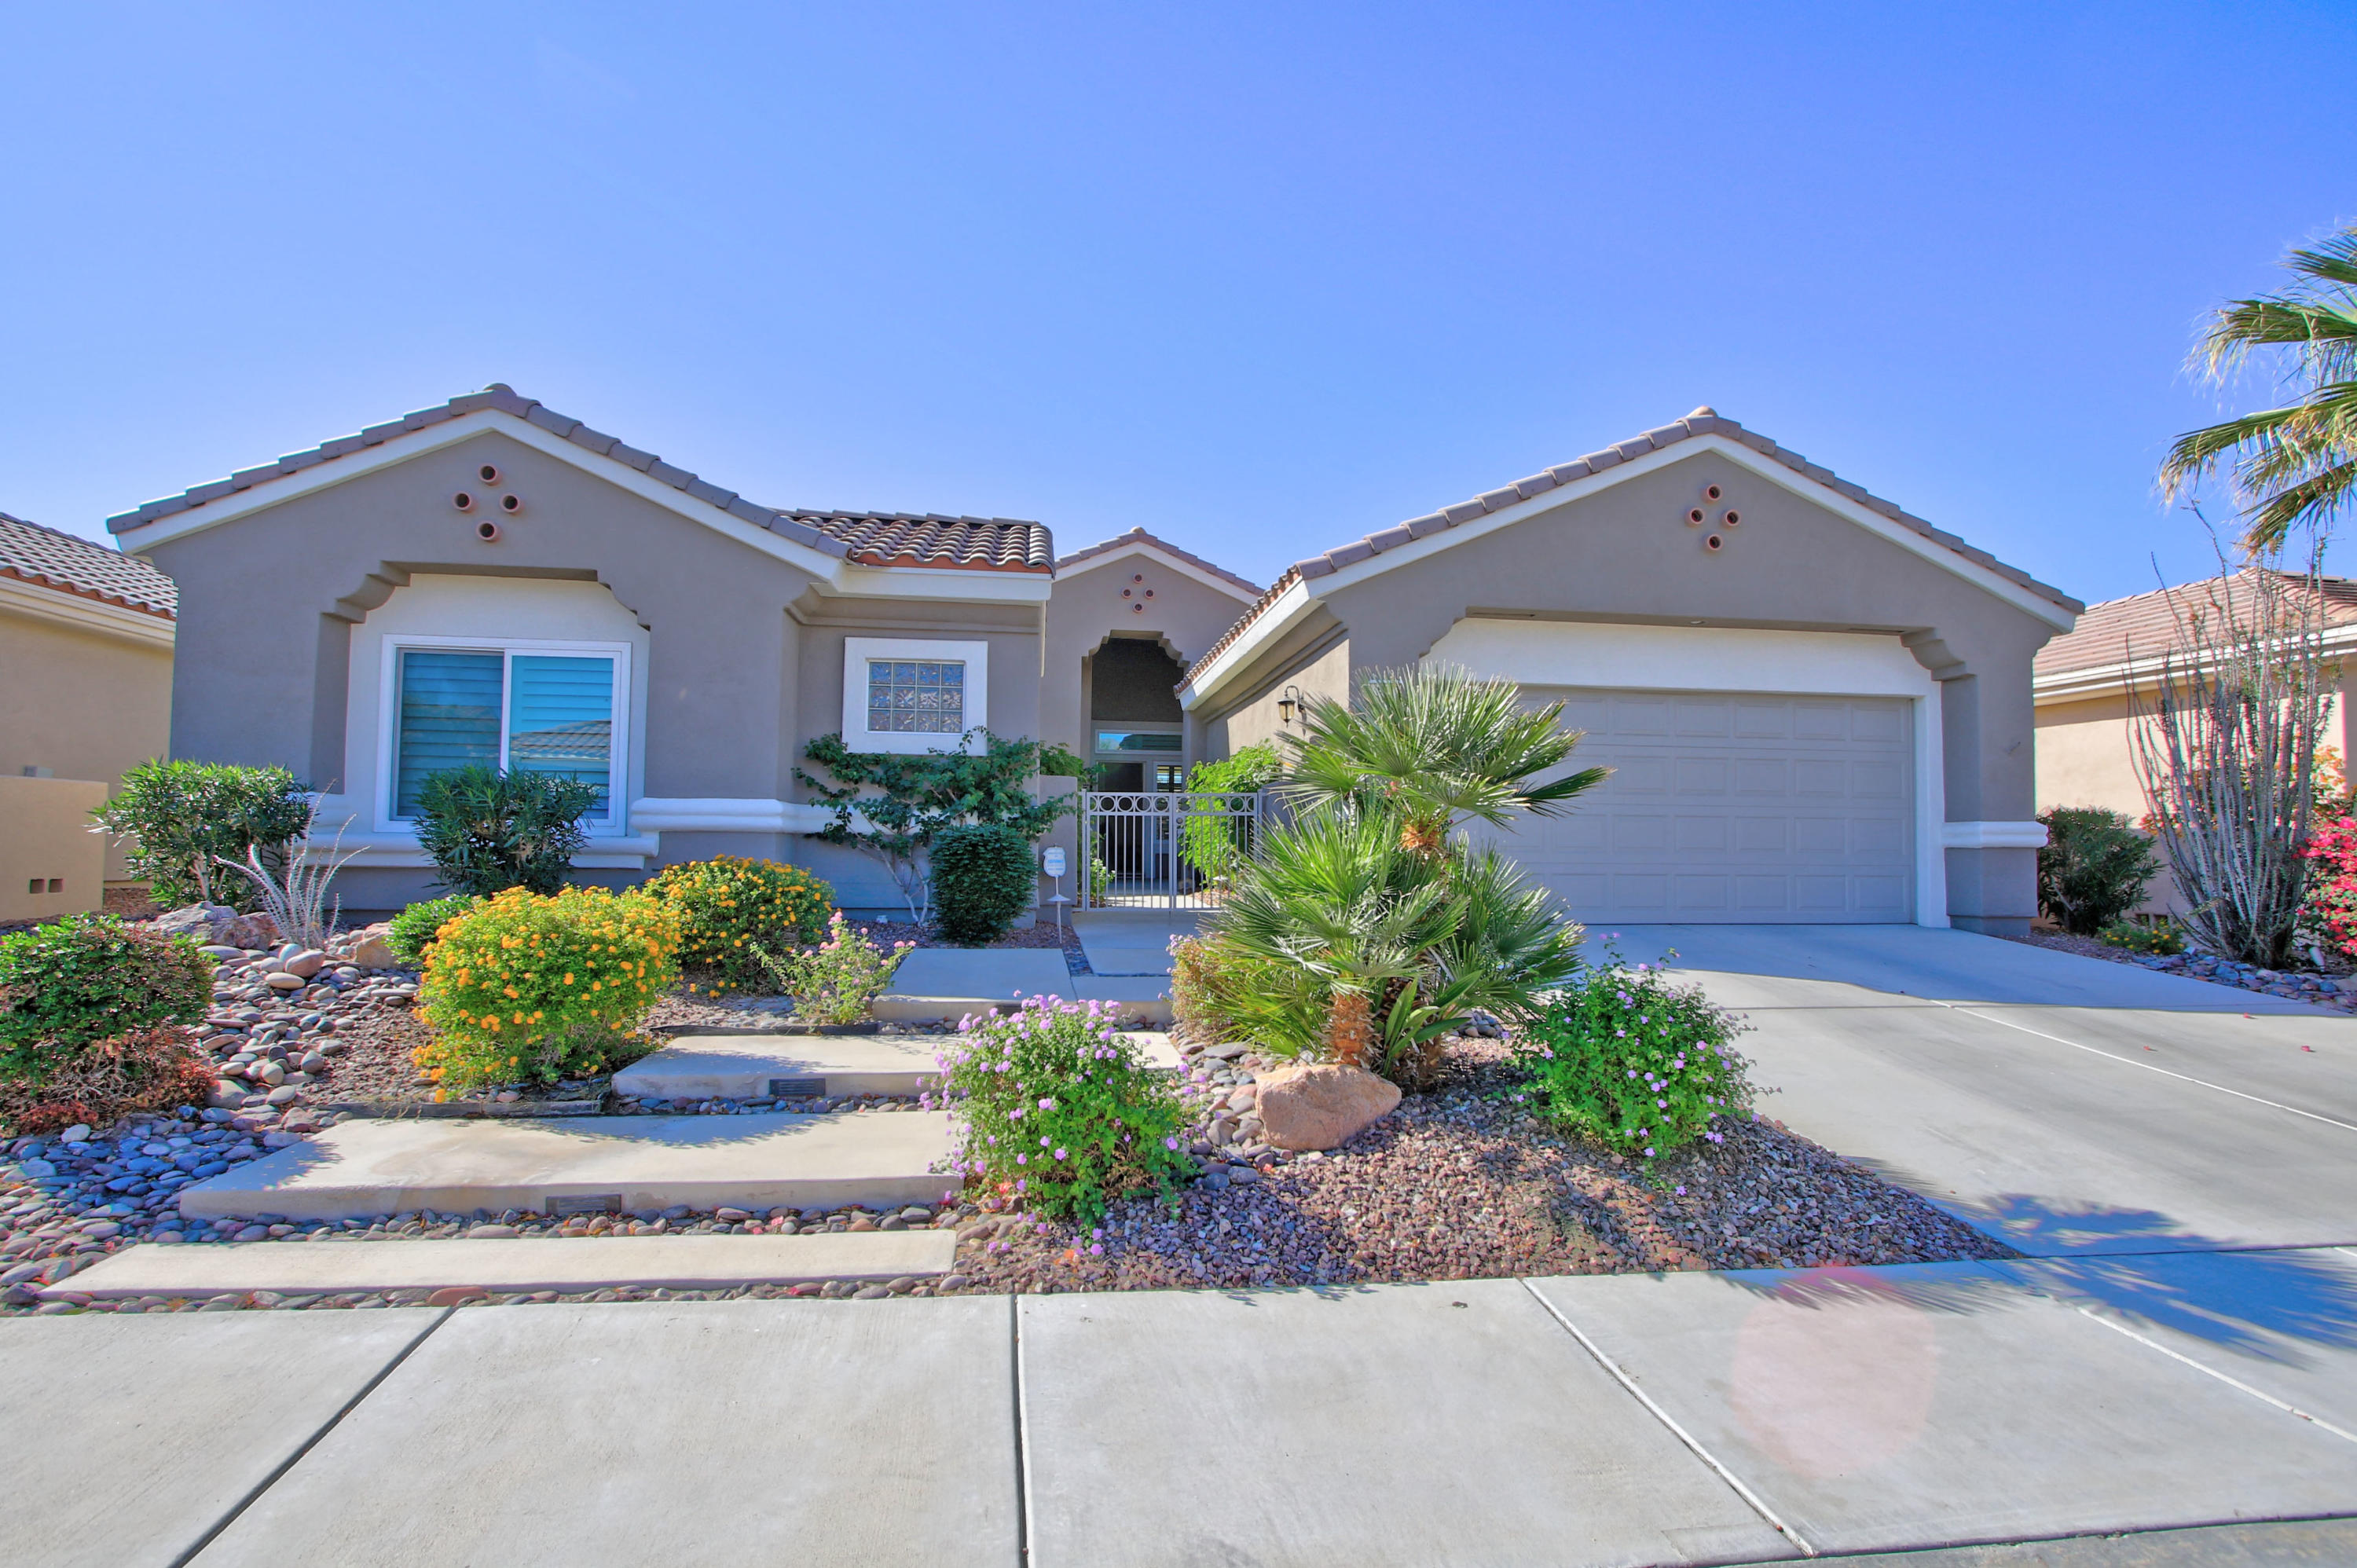 Photo of 78797 Falsetto Drive, Palm Desert, CA 92211